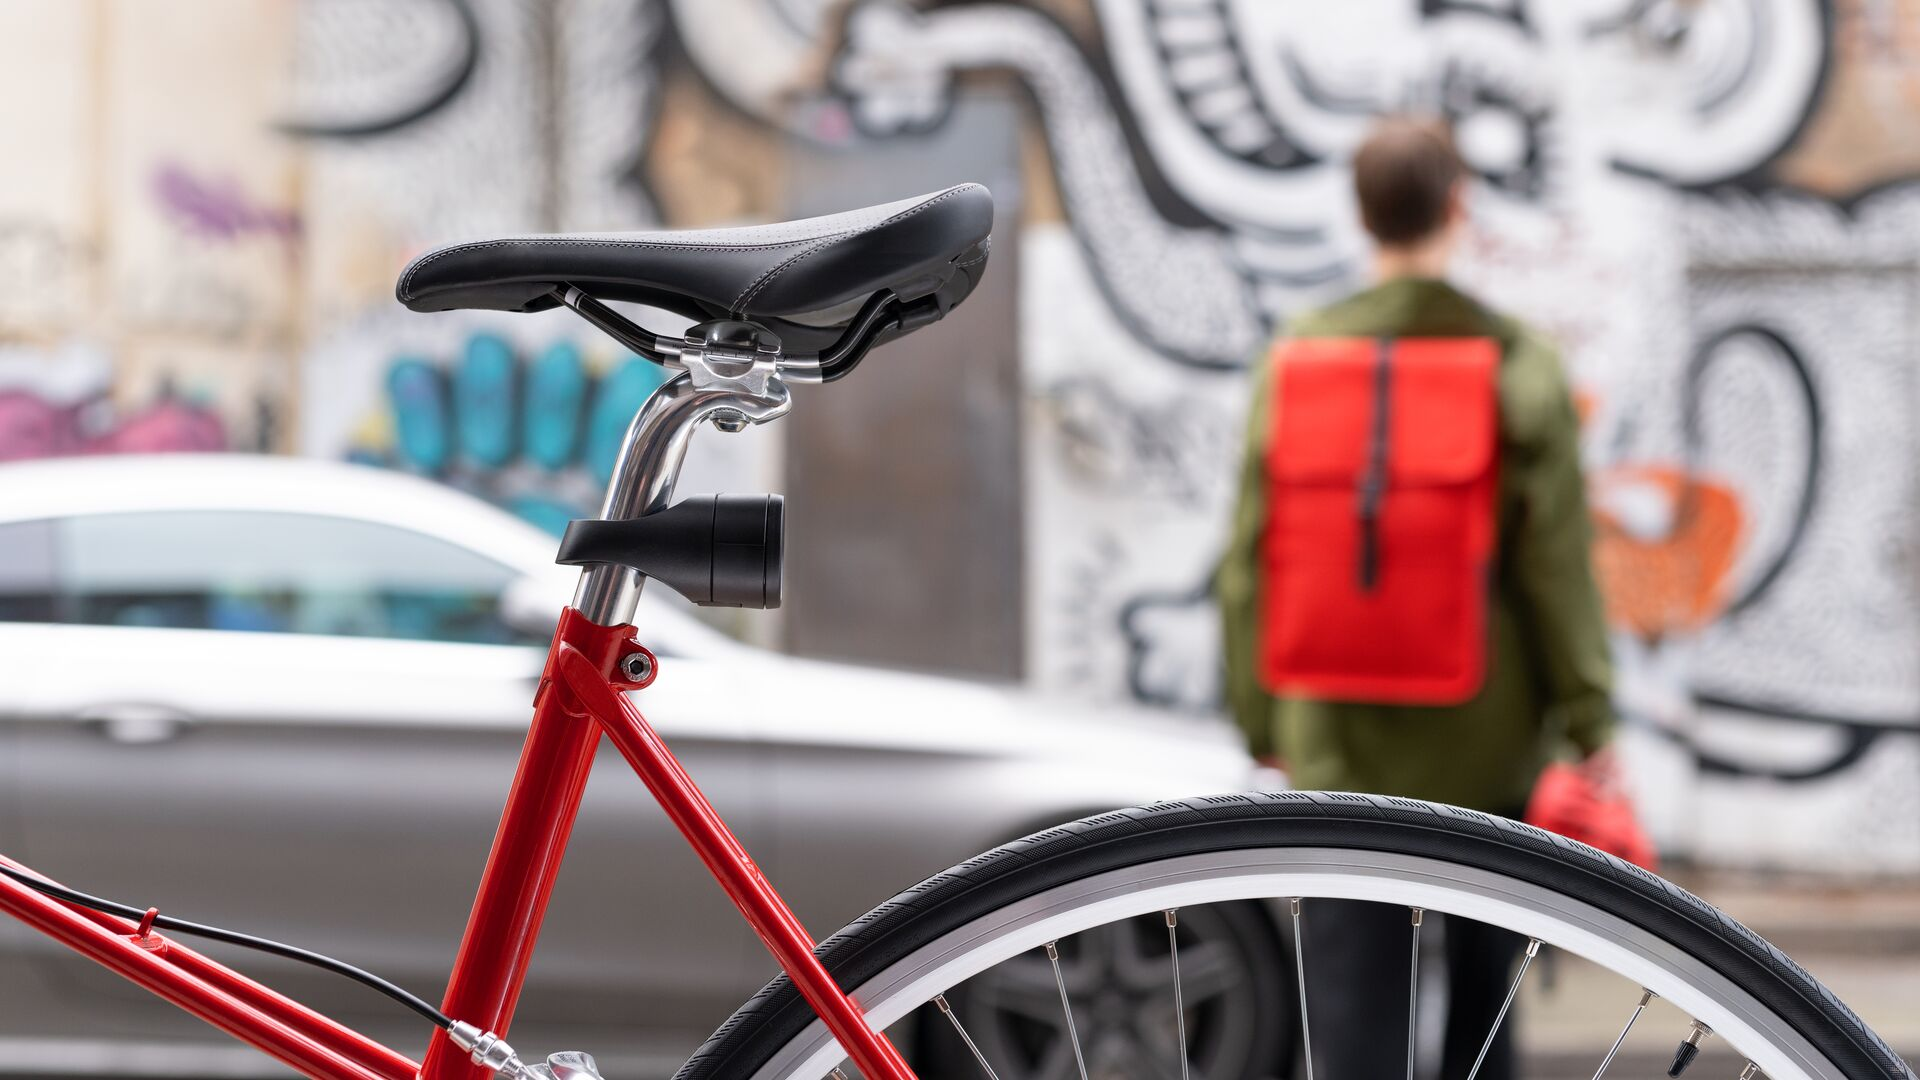 an image of the Vodafone Curve Bike tracker on a bicycle with a cyclist walking away into the background